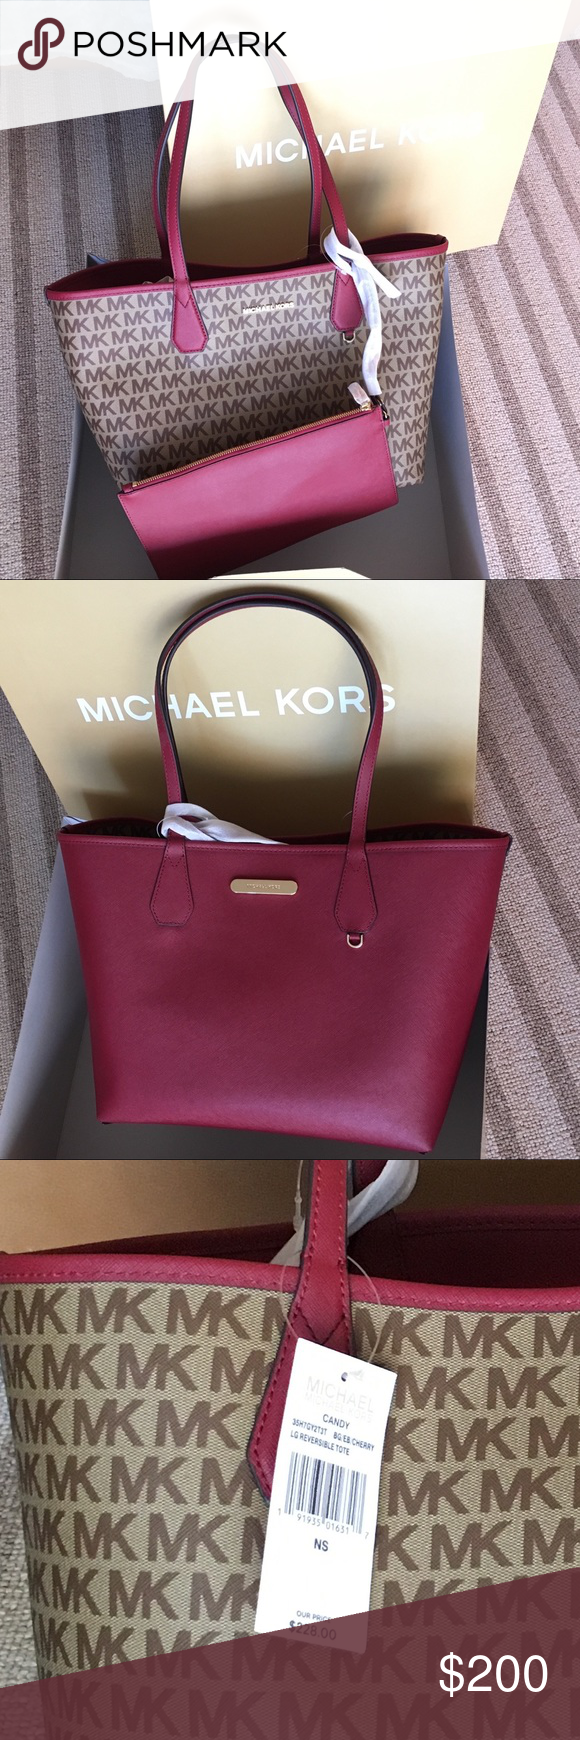 03daa1cd6fbb54 Michael kors burgundy reversible tote bag New with tag burgundy reversible  signature tote bag with pouch